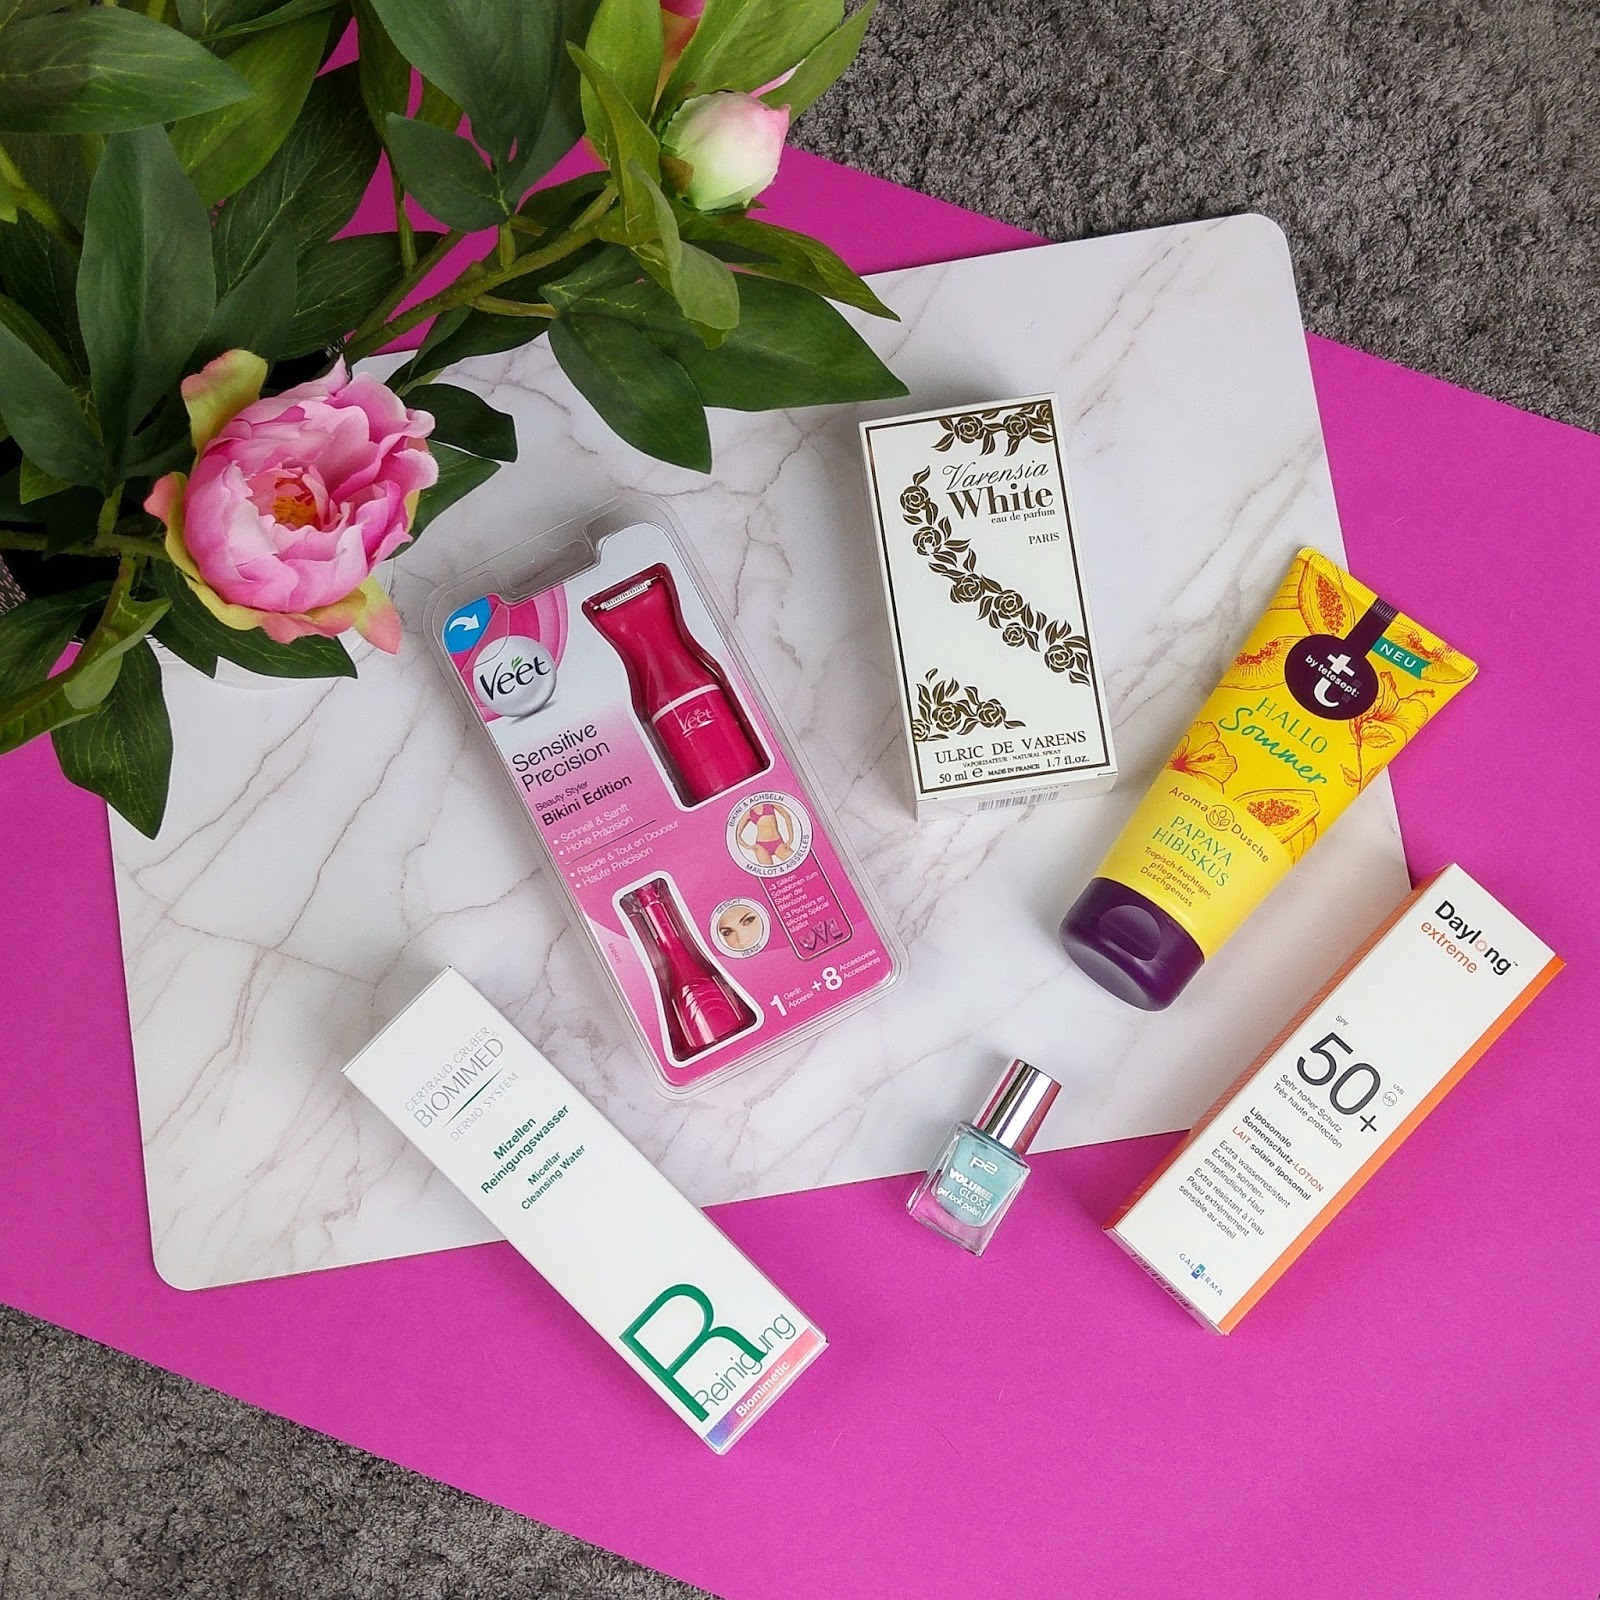 beauty blogger, beautypress, biomimed mizellen reinigungswasser, bloggerevent, daylong, news box, p2 cosmetics, tetesept, ulric de varens, varensia white, veet sensitive precision beauty styler bikini edition,